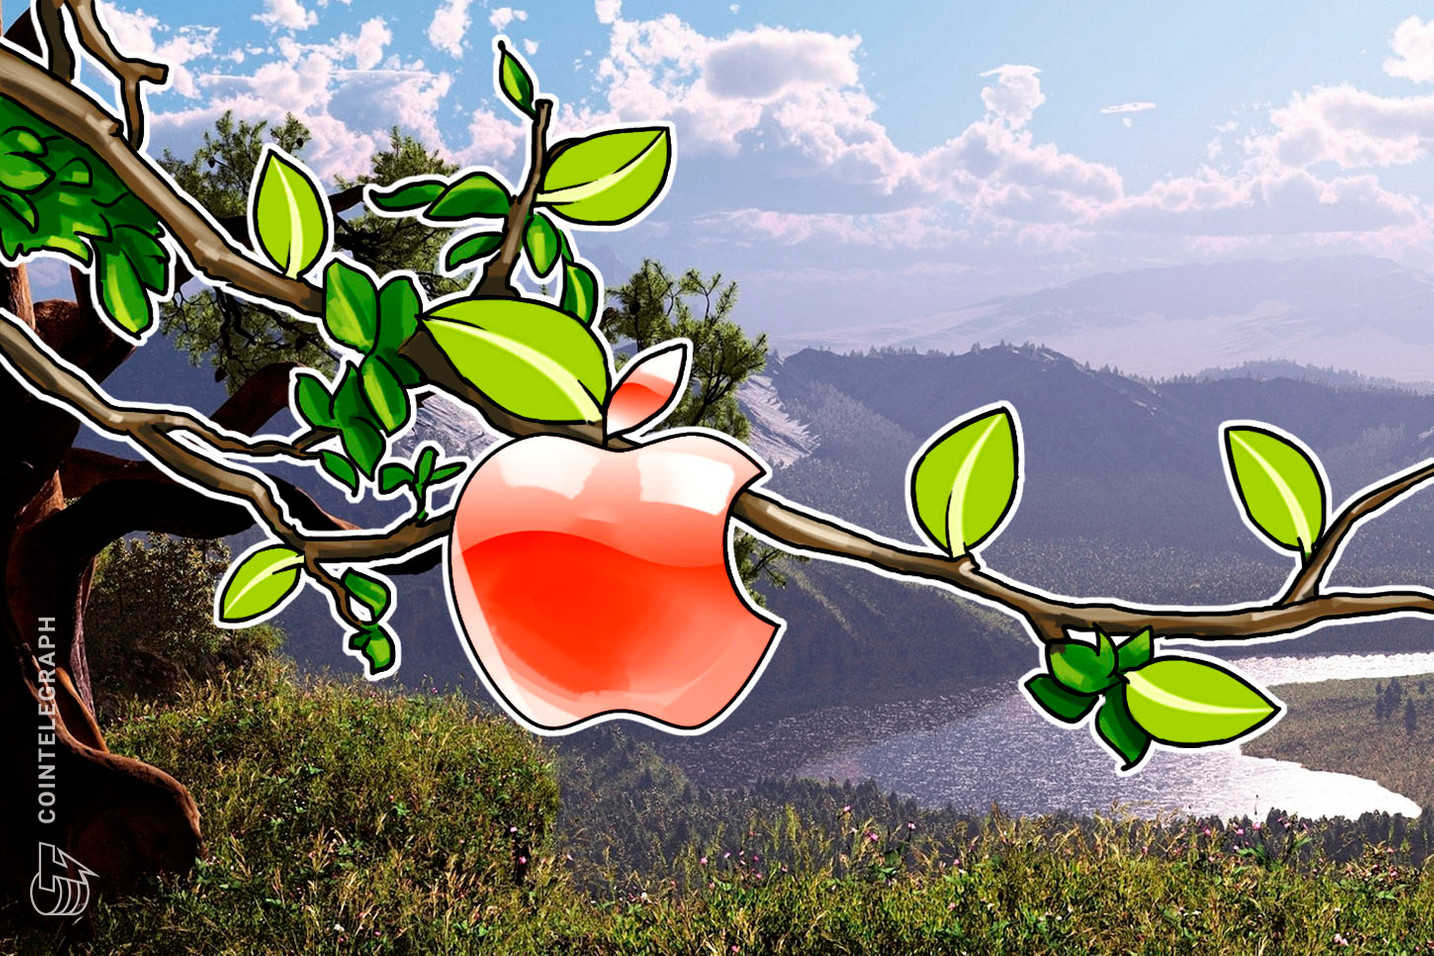 Buying Crypto With The Apple Card Violates Its Customer Agreement